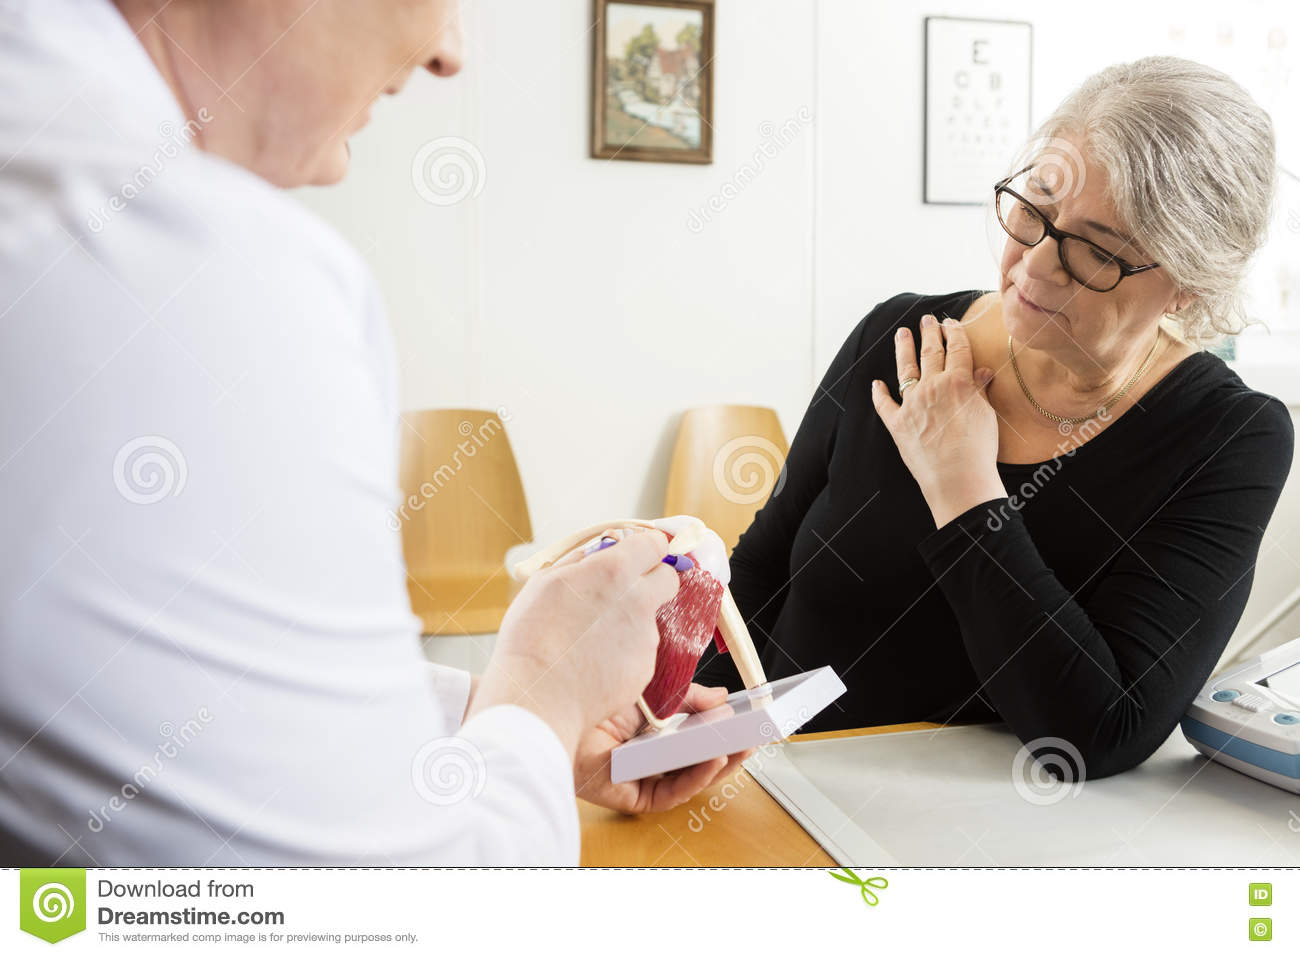 Doctor Explaining Shoulder Rotator Cuff Model To Senior Woman